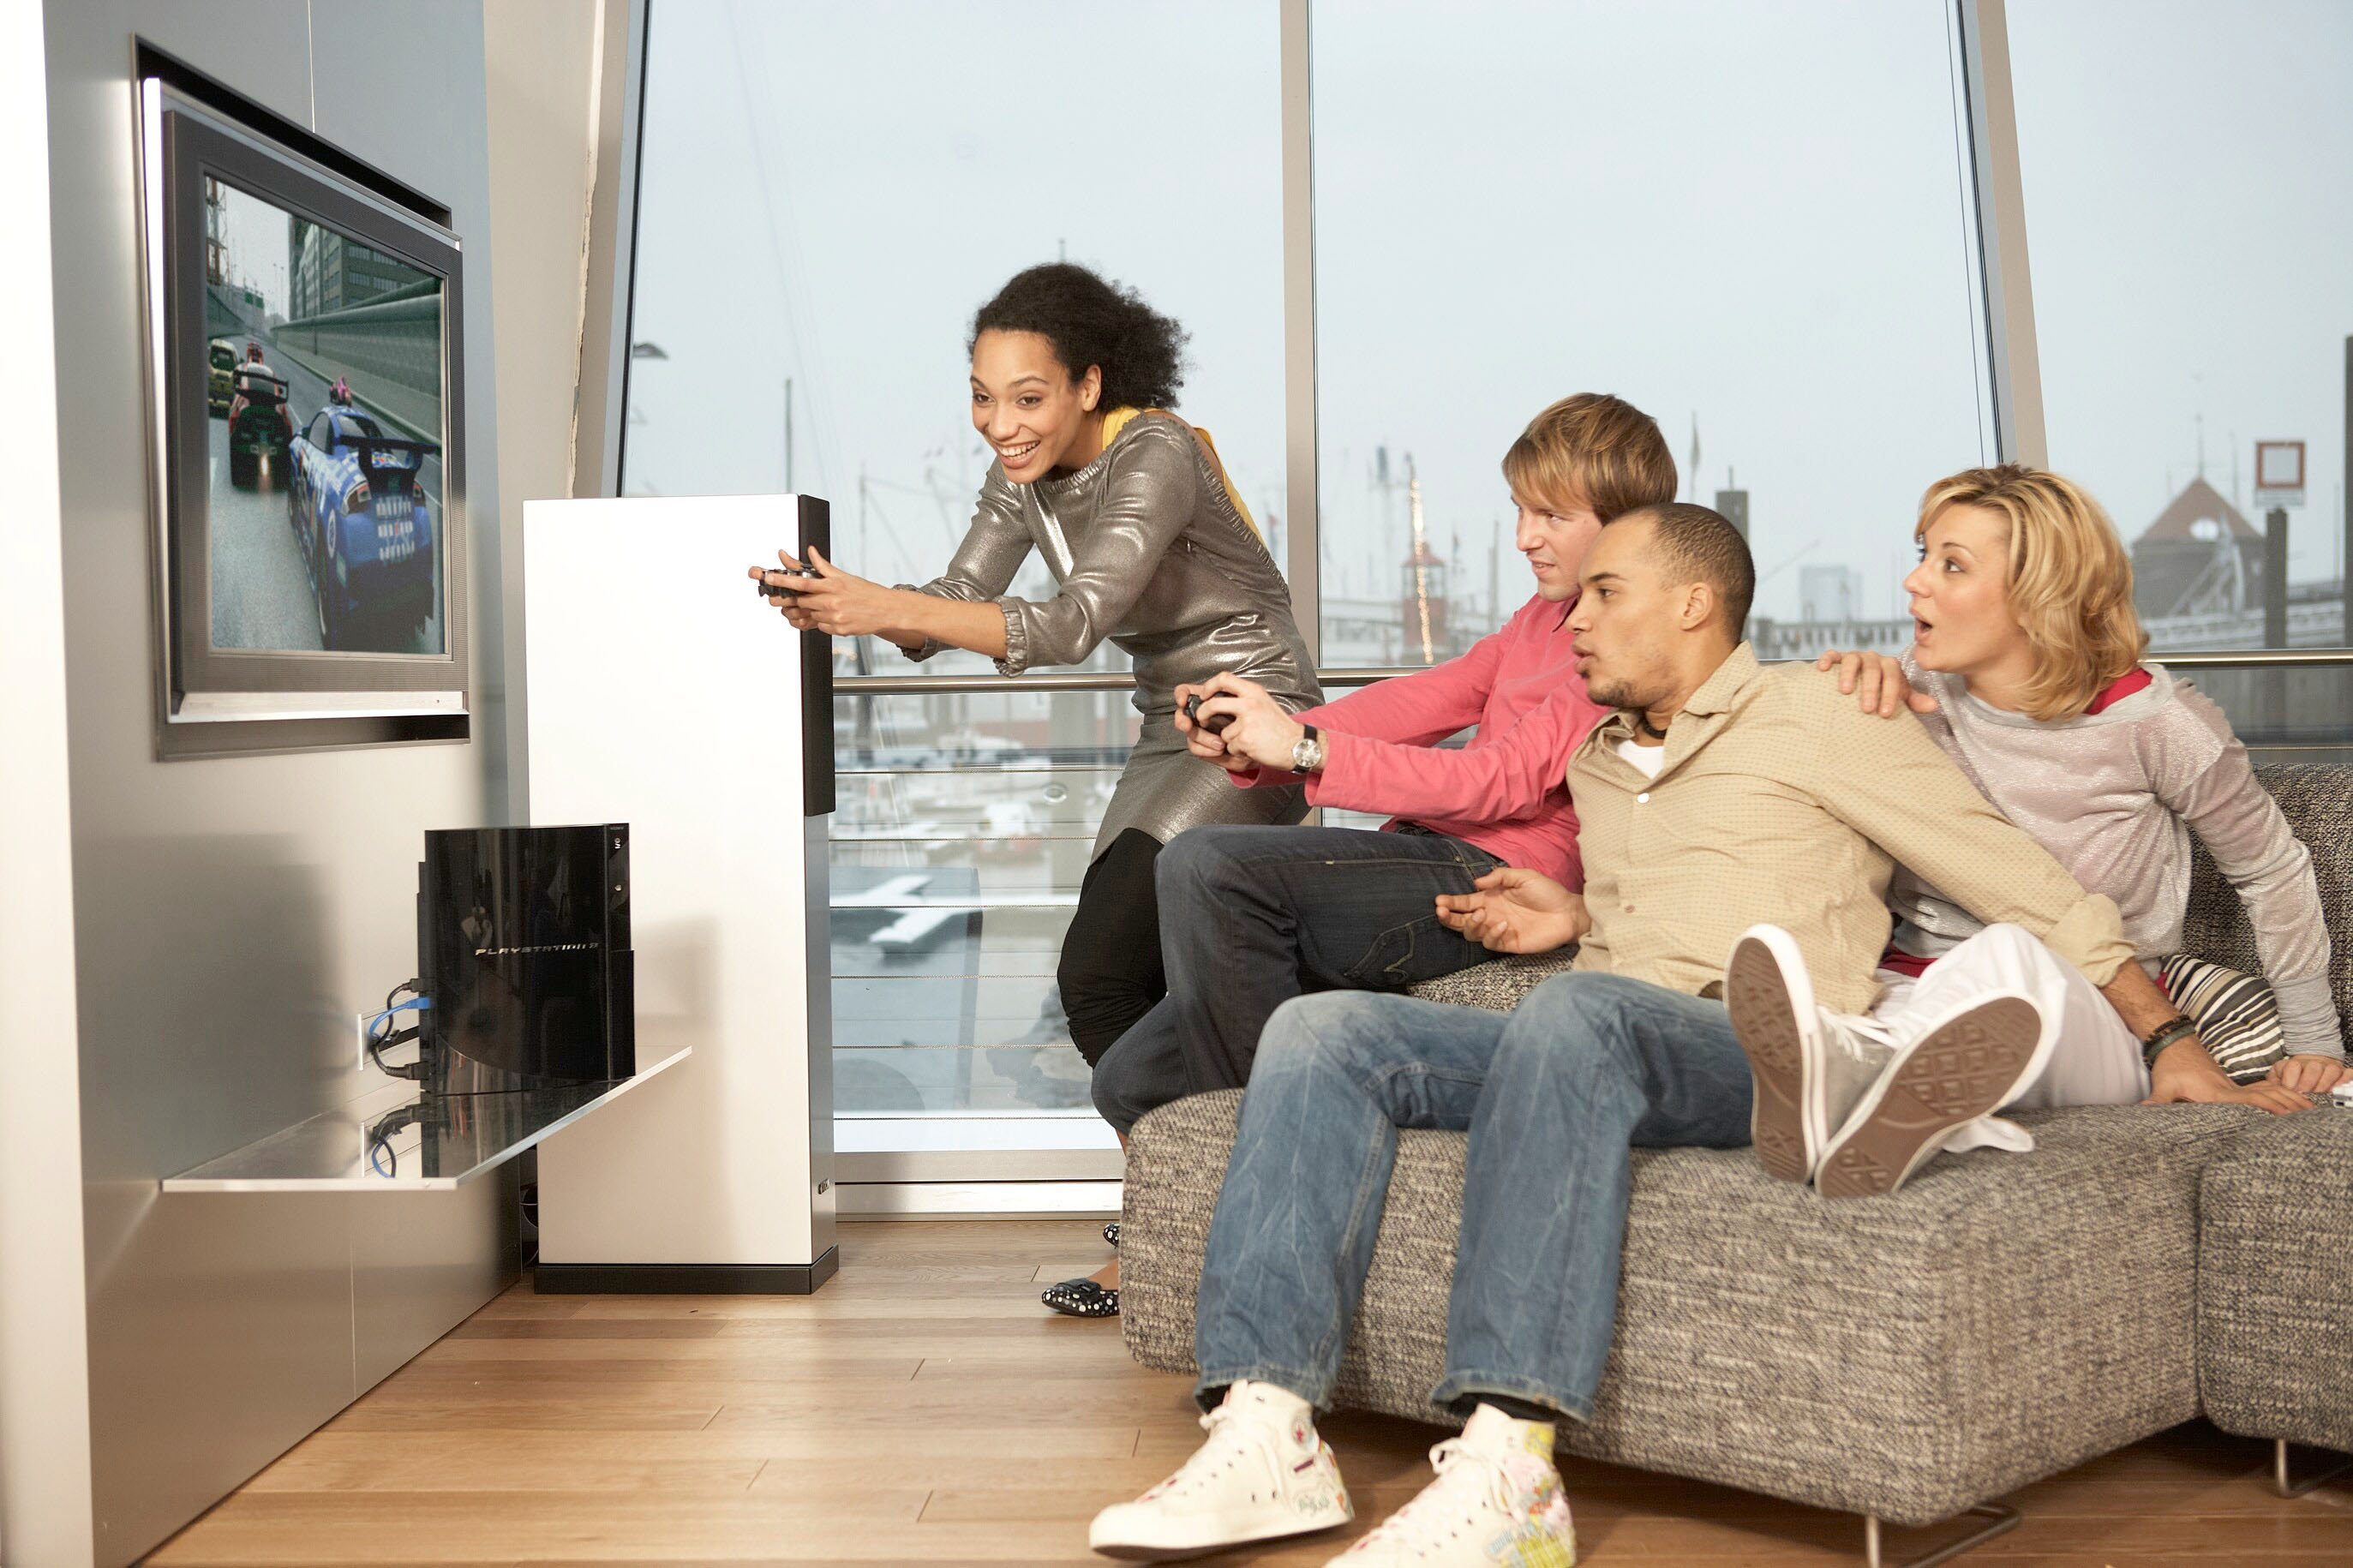 PlayStation with family and Friends